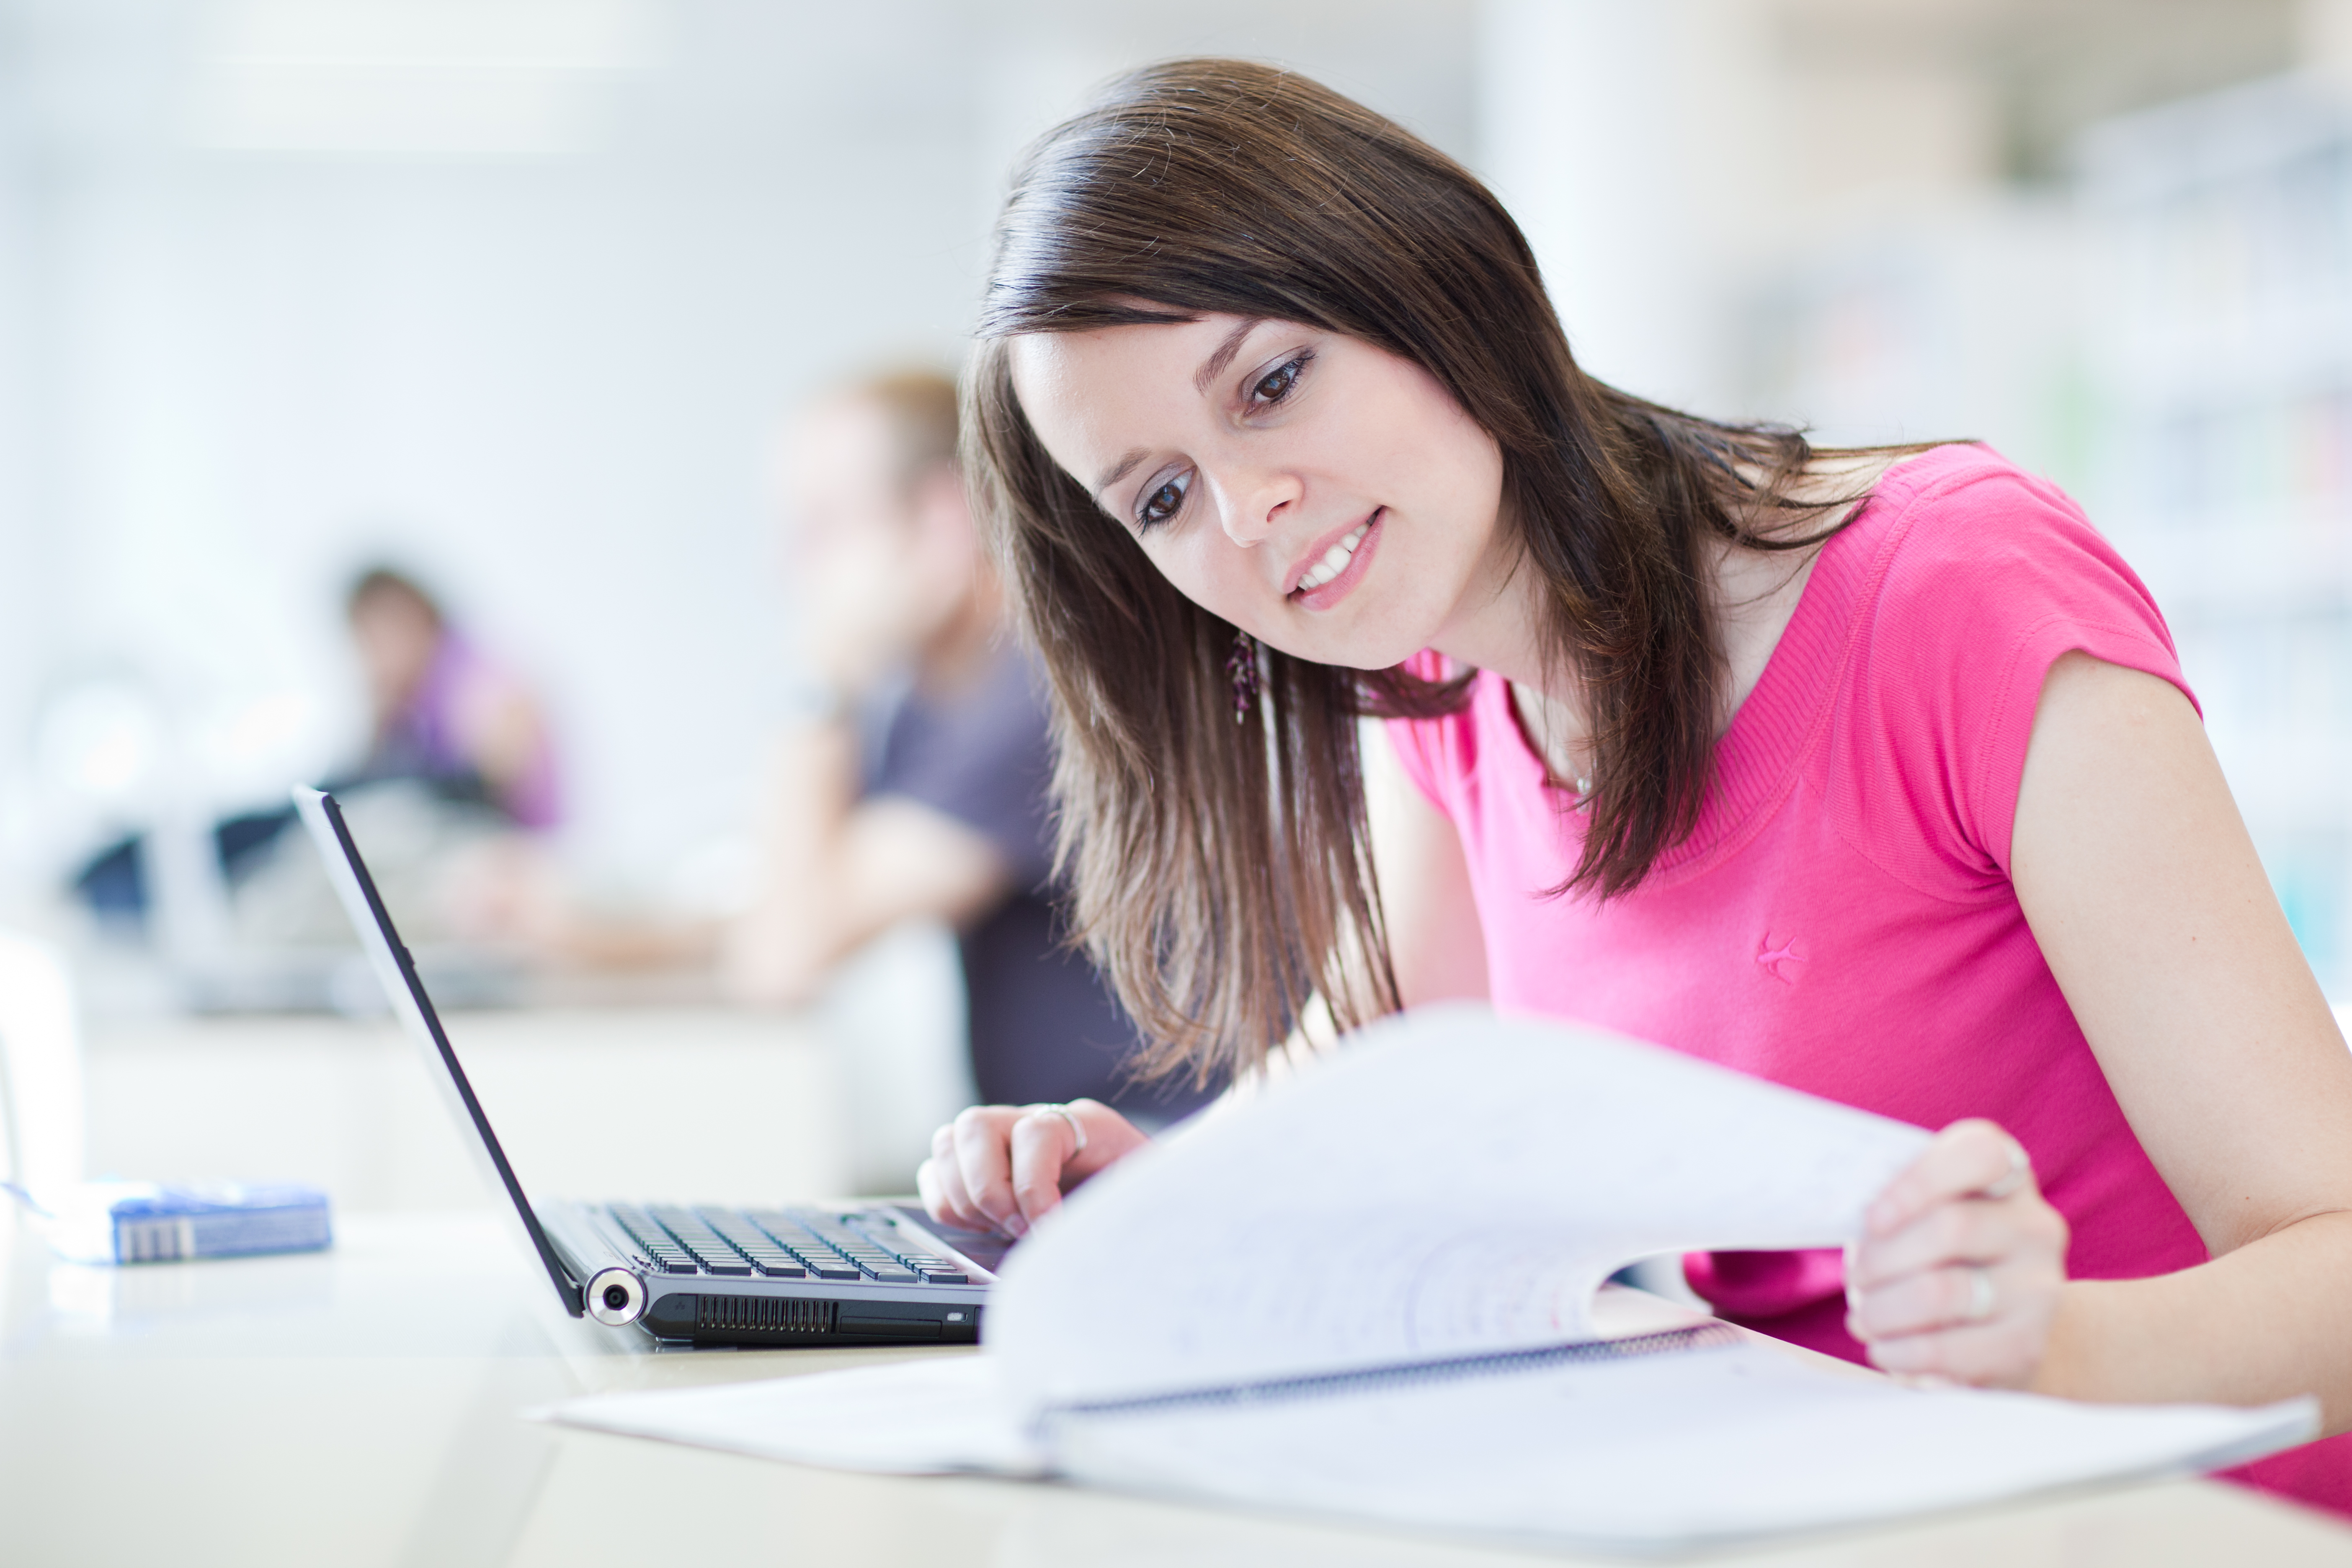 Woman in pink top studying - shutterstock_64648147